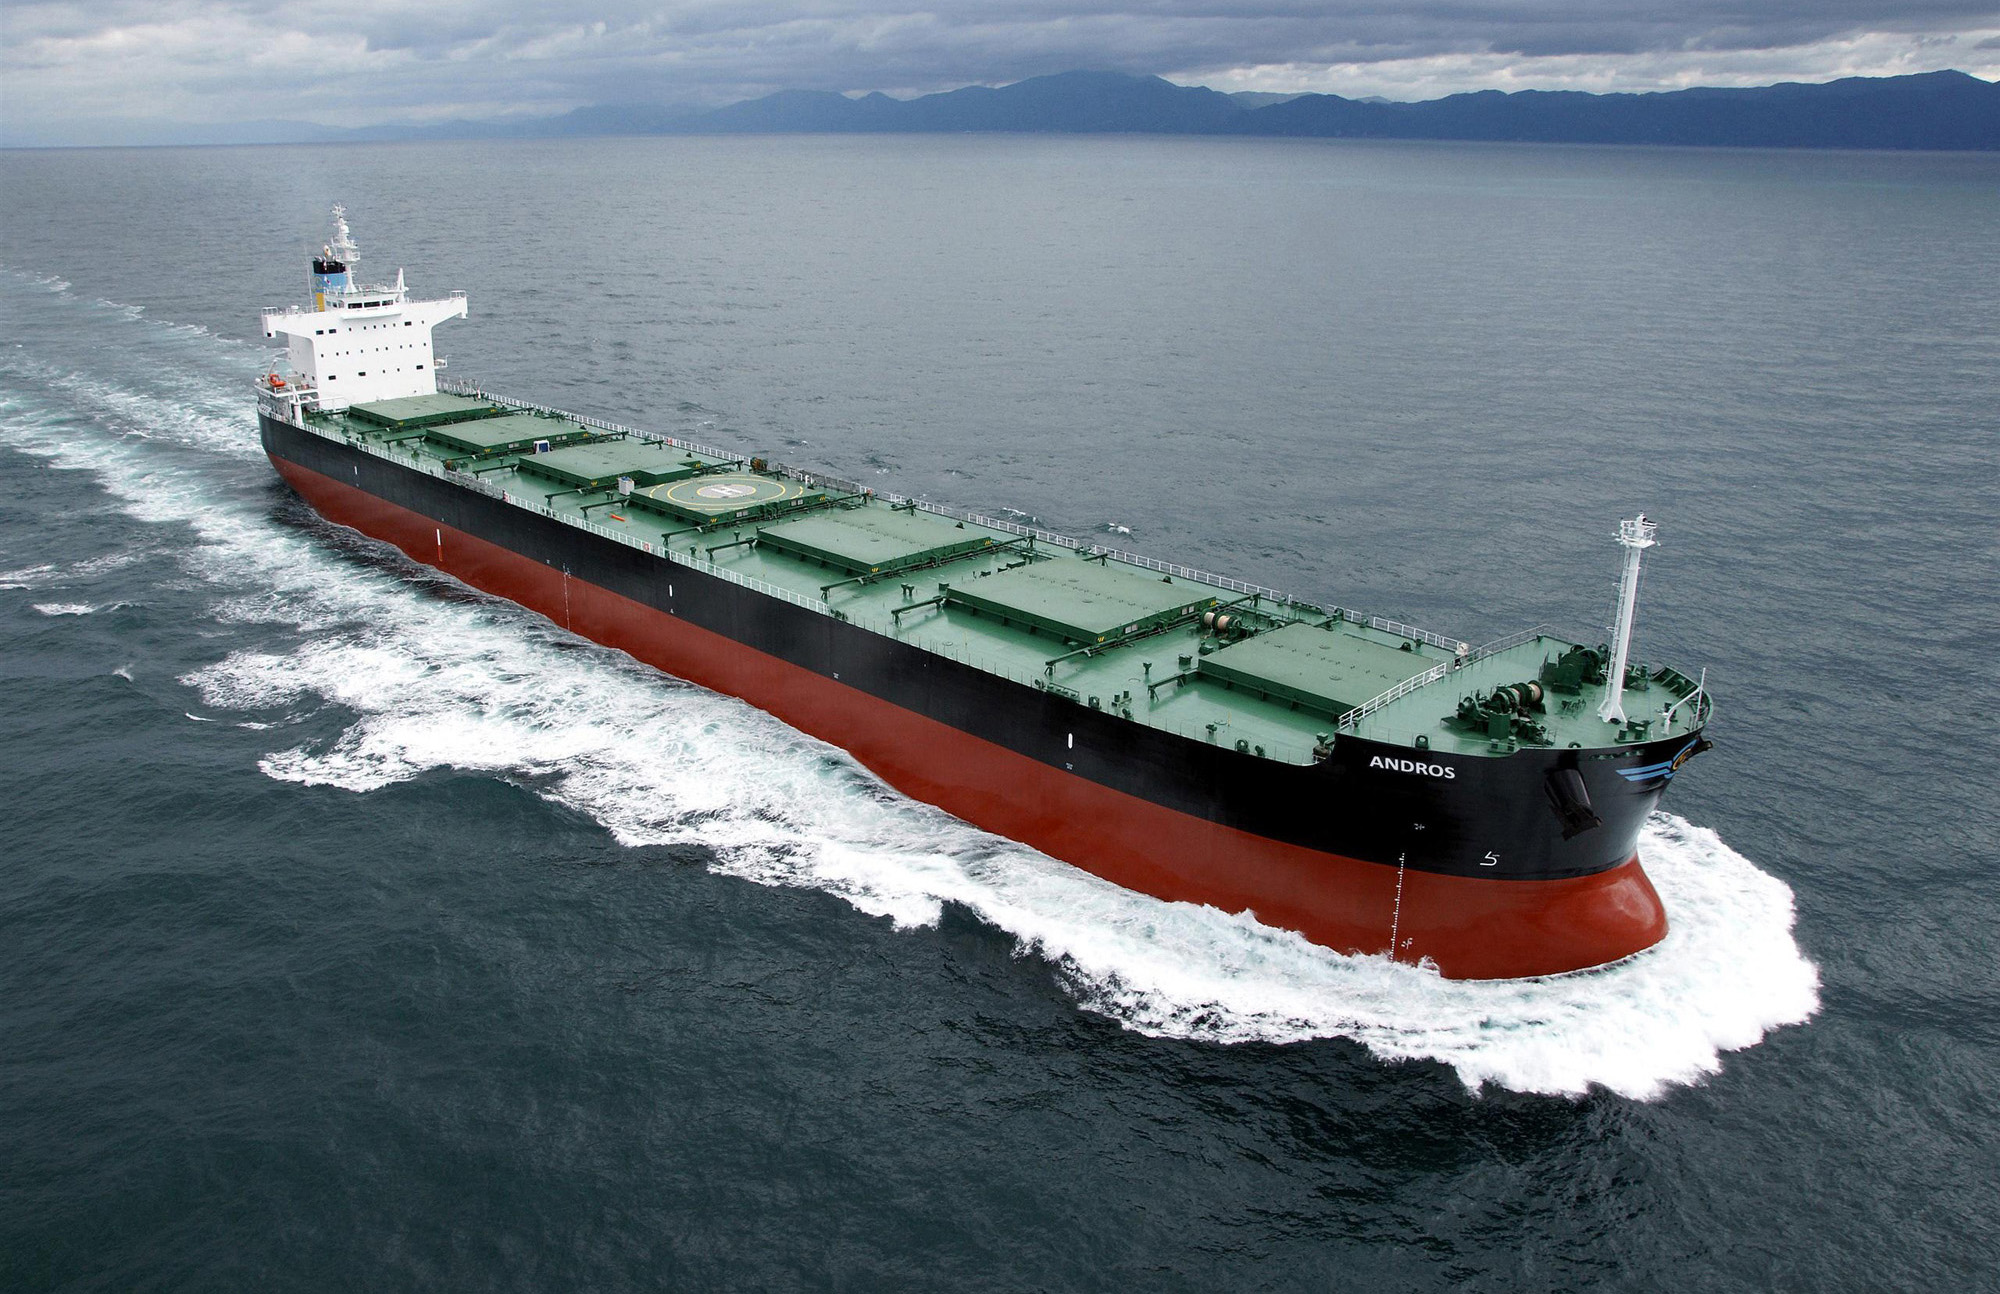 M/V ANDROS